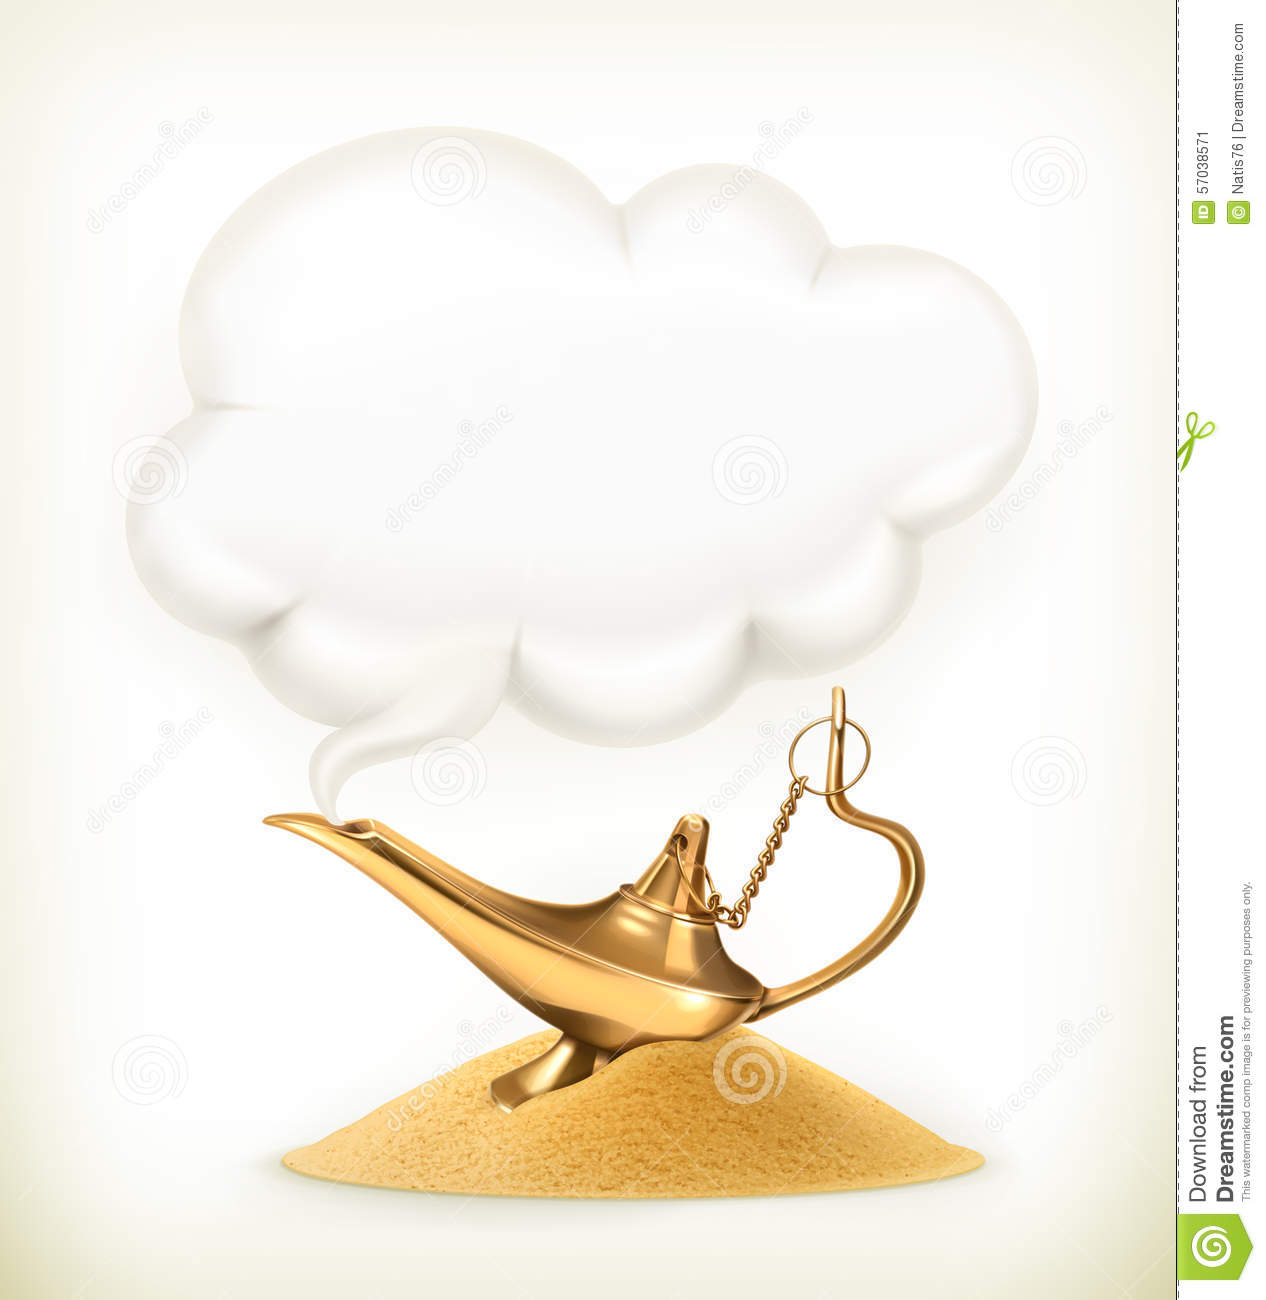 Genie lamp stock photos pictures royalty free genie - Royalty Free Vector Background Genie Illustration Isolated Lamp